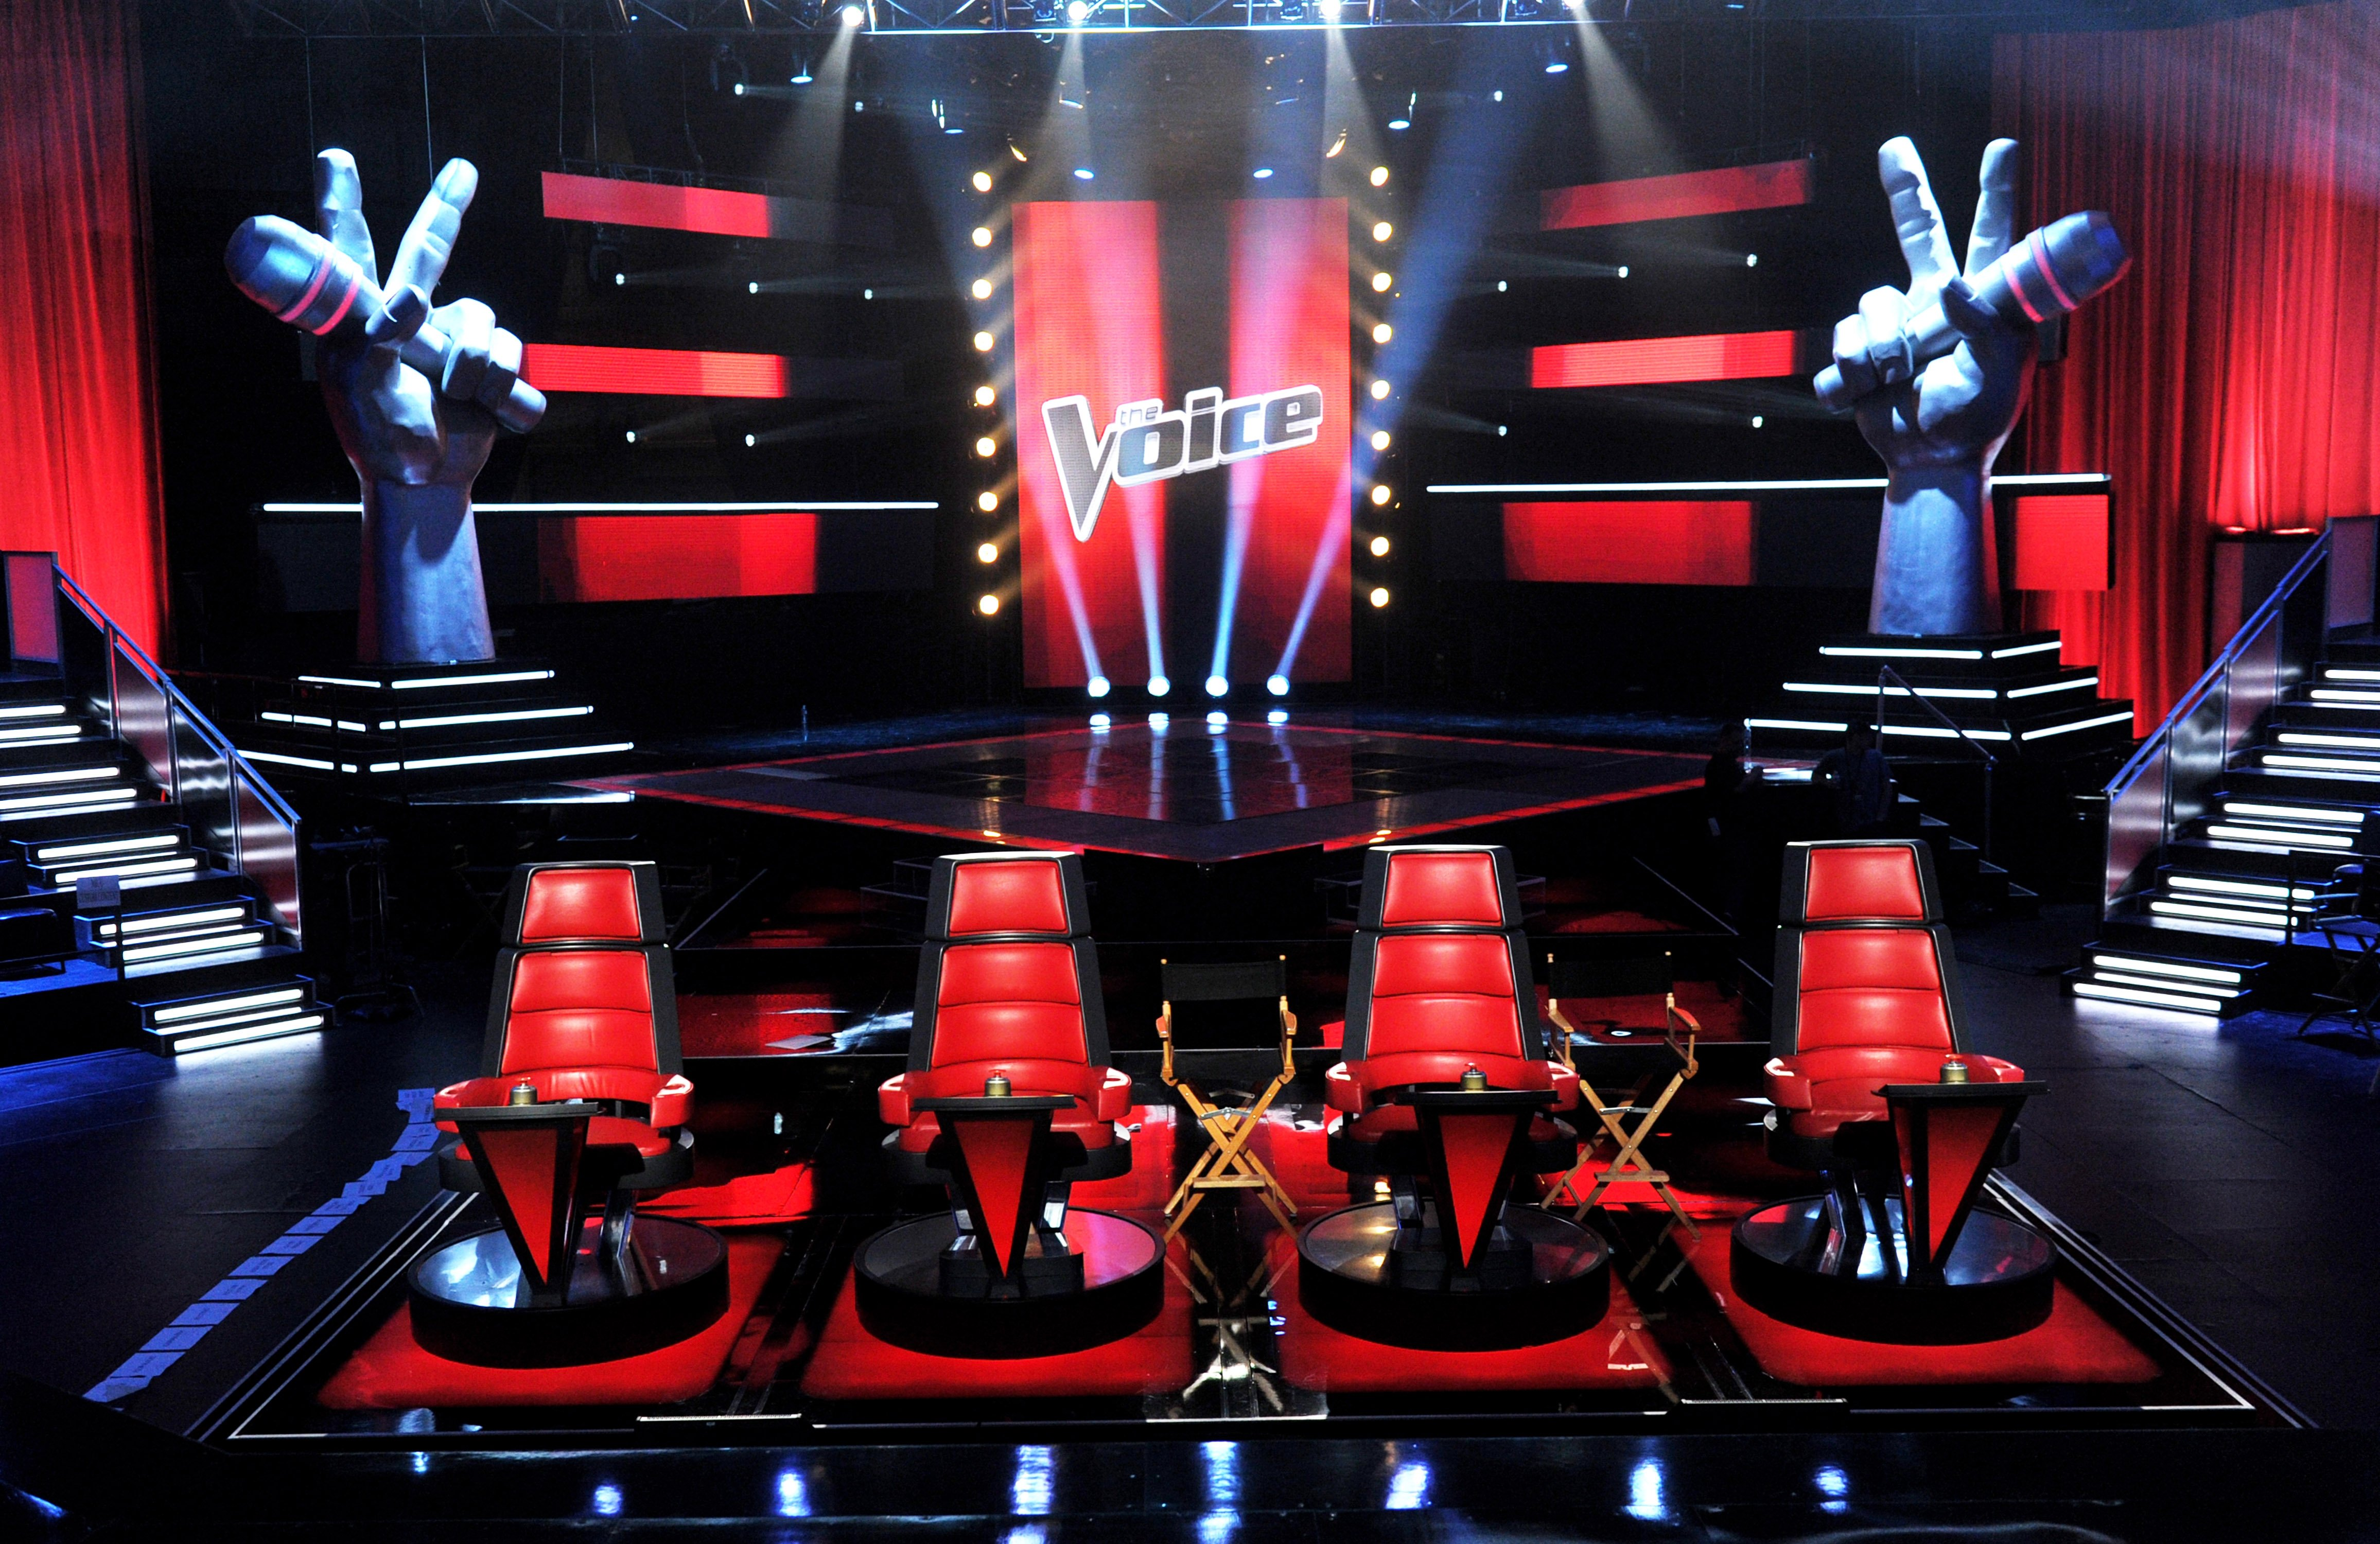 A view of the coach's swiveling chairs on The Voice in Culver City, California on 28 October, 2011. | Photo: Getty Images